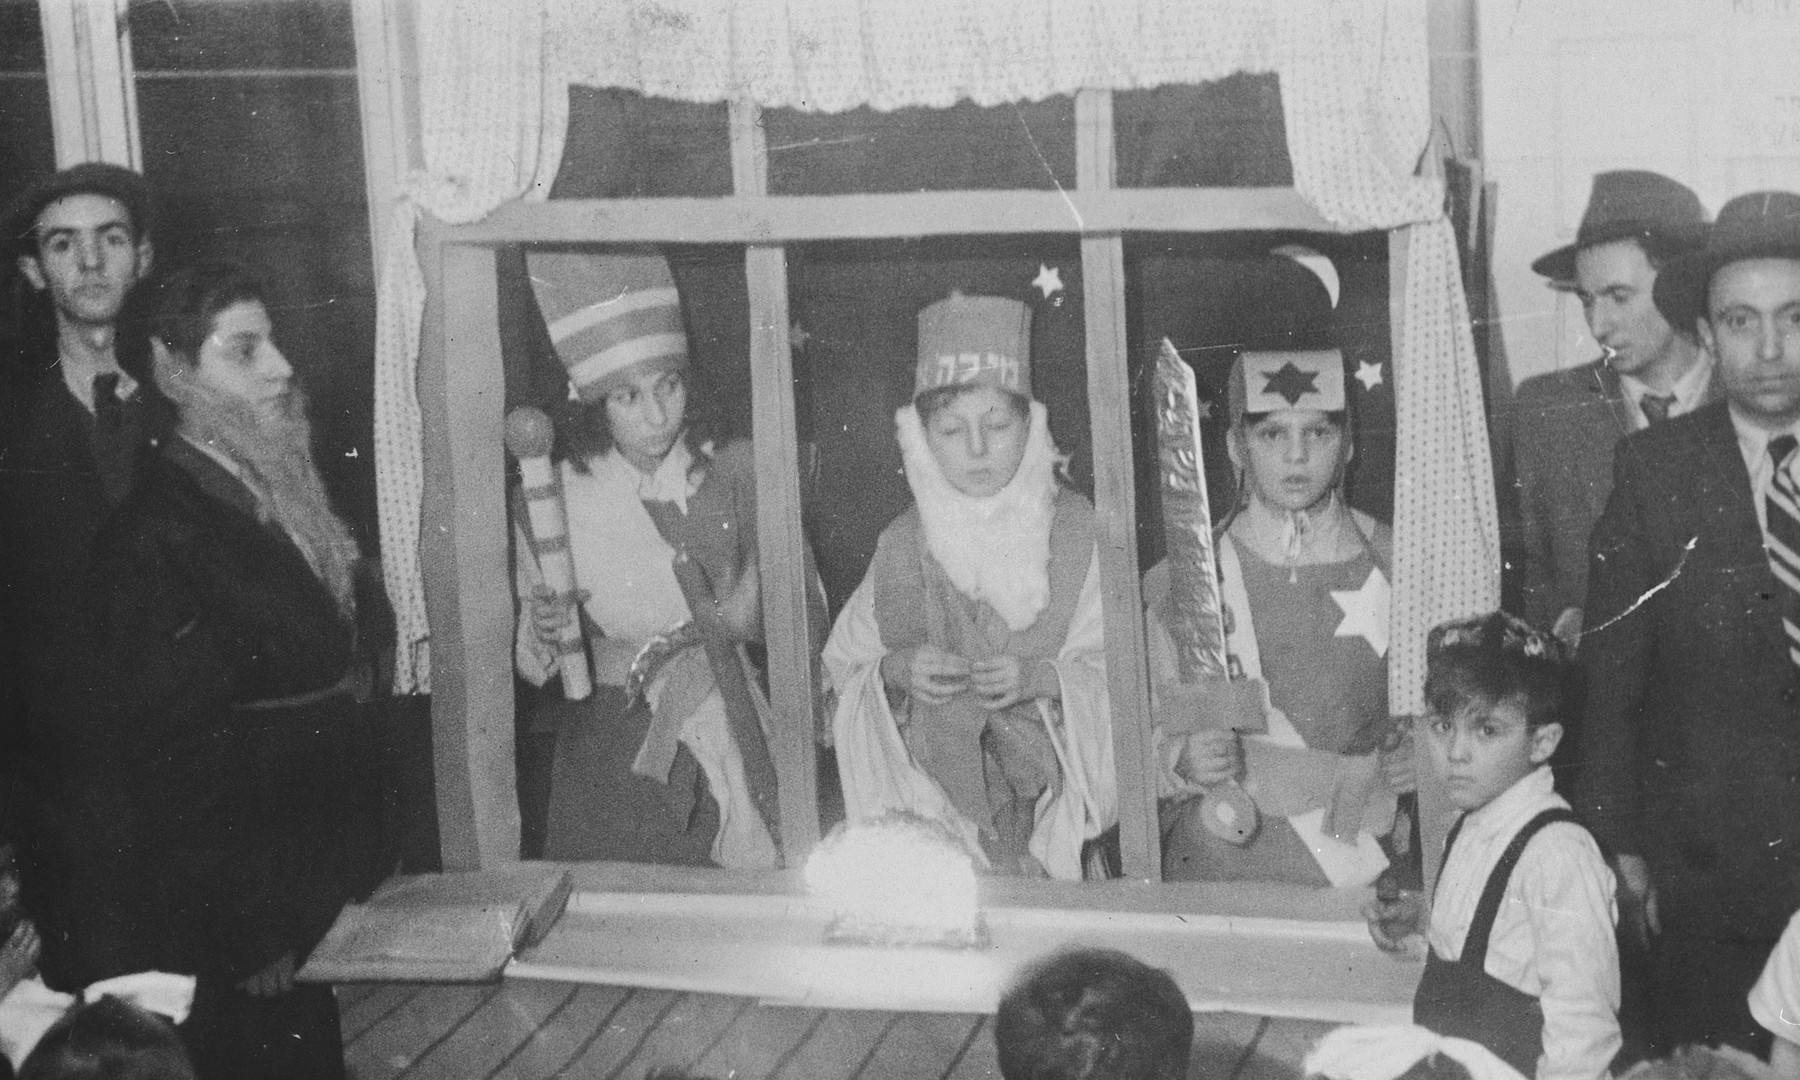 Jewish children perform a Hanukkah play in the Jewish school in Lodz after the war.